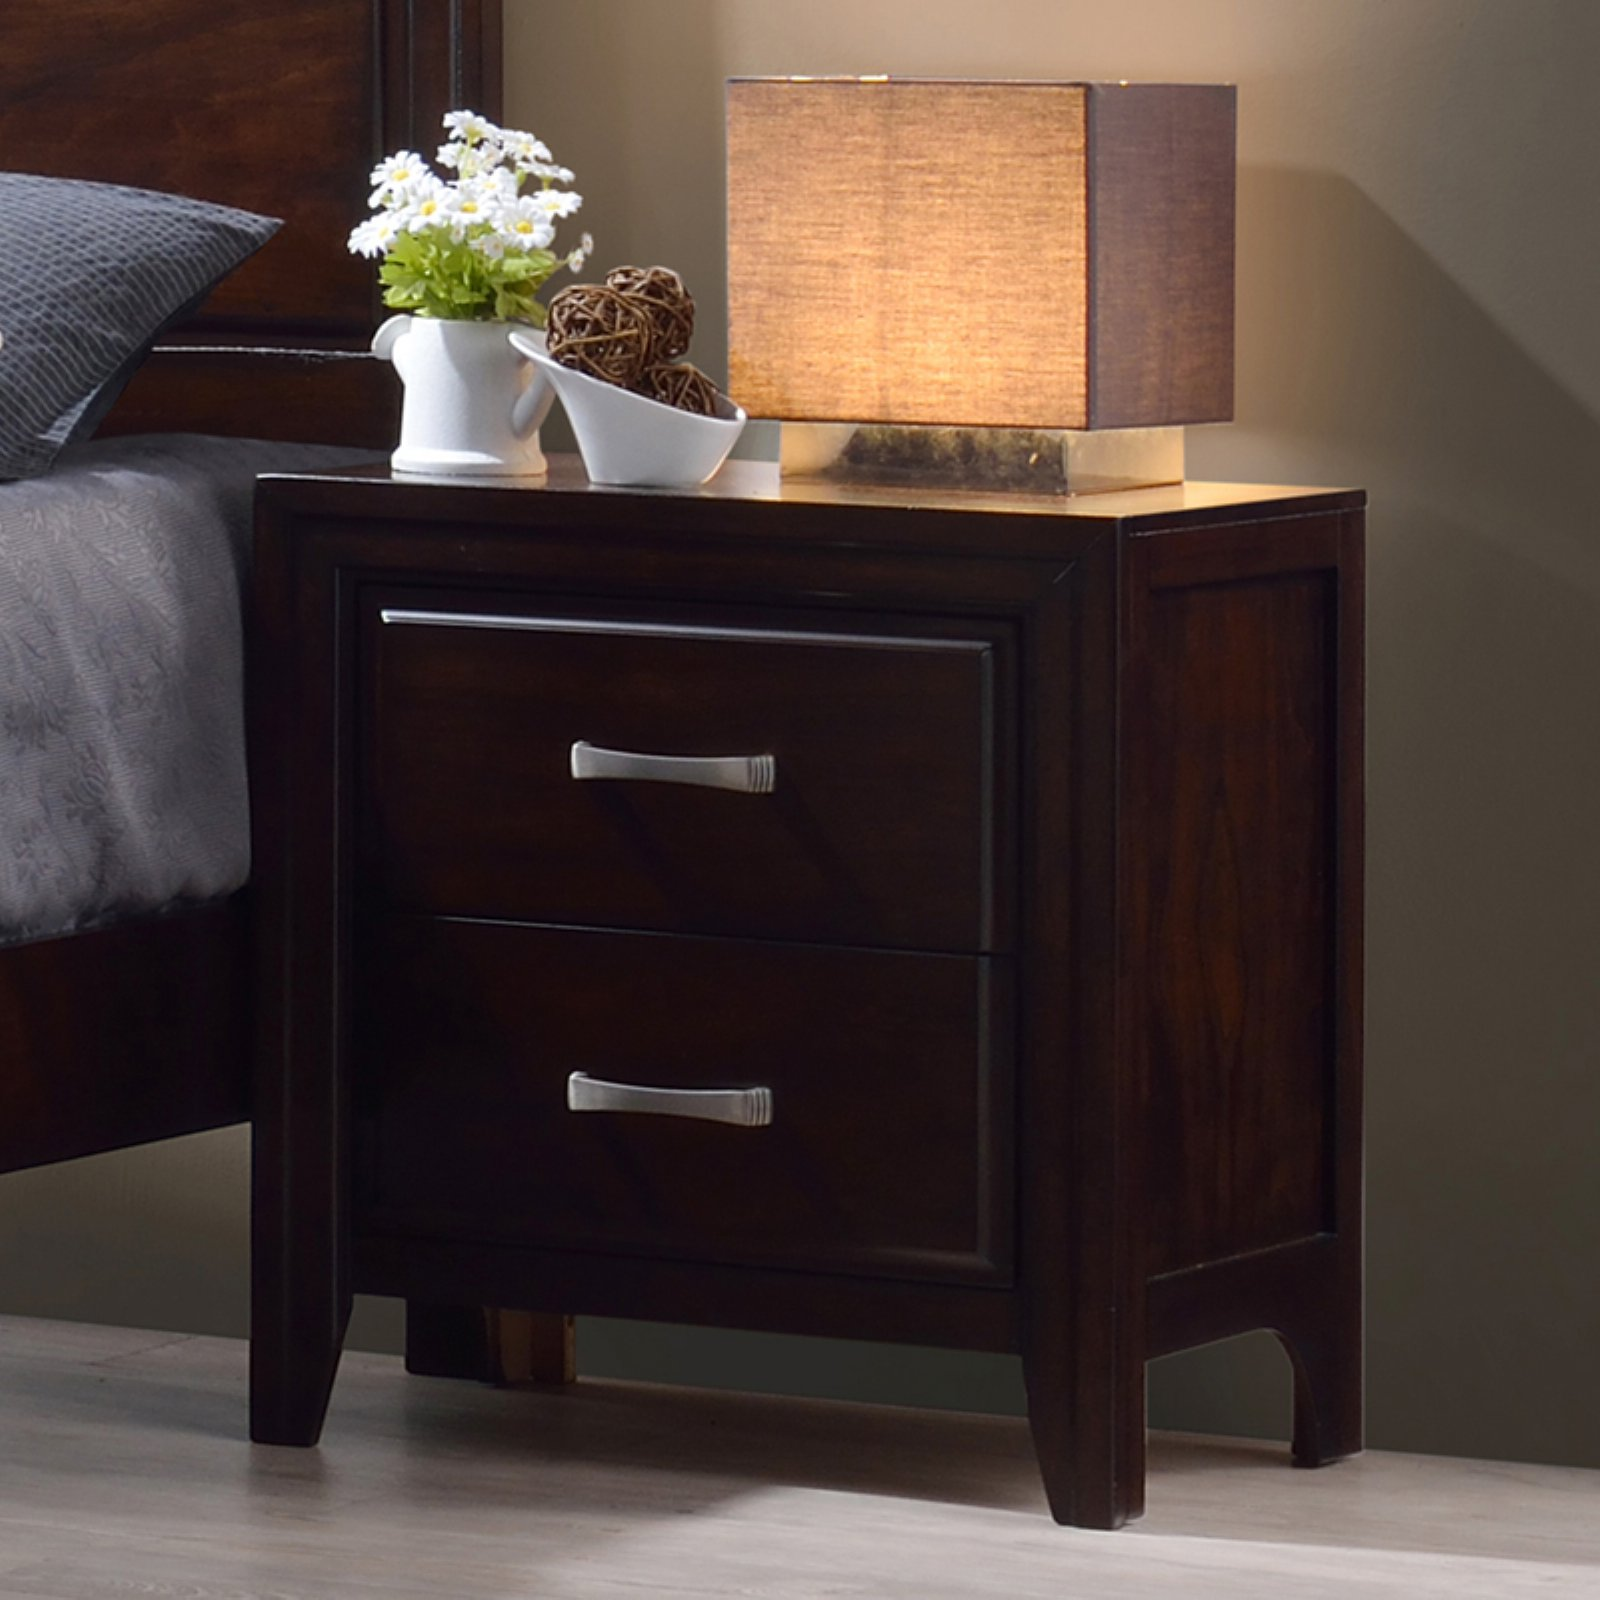 Simmons Agathis 2 Drawer Nightstand